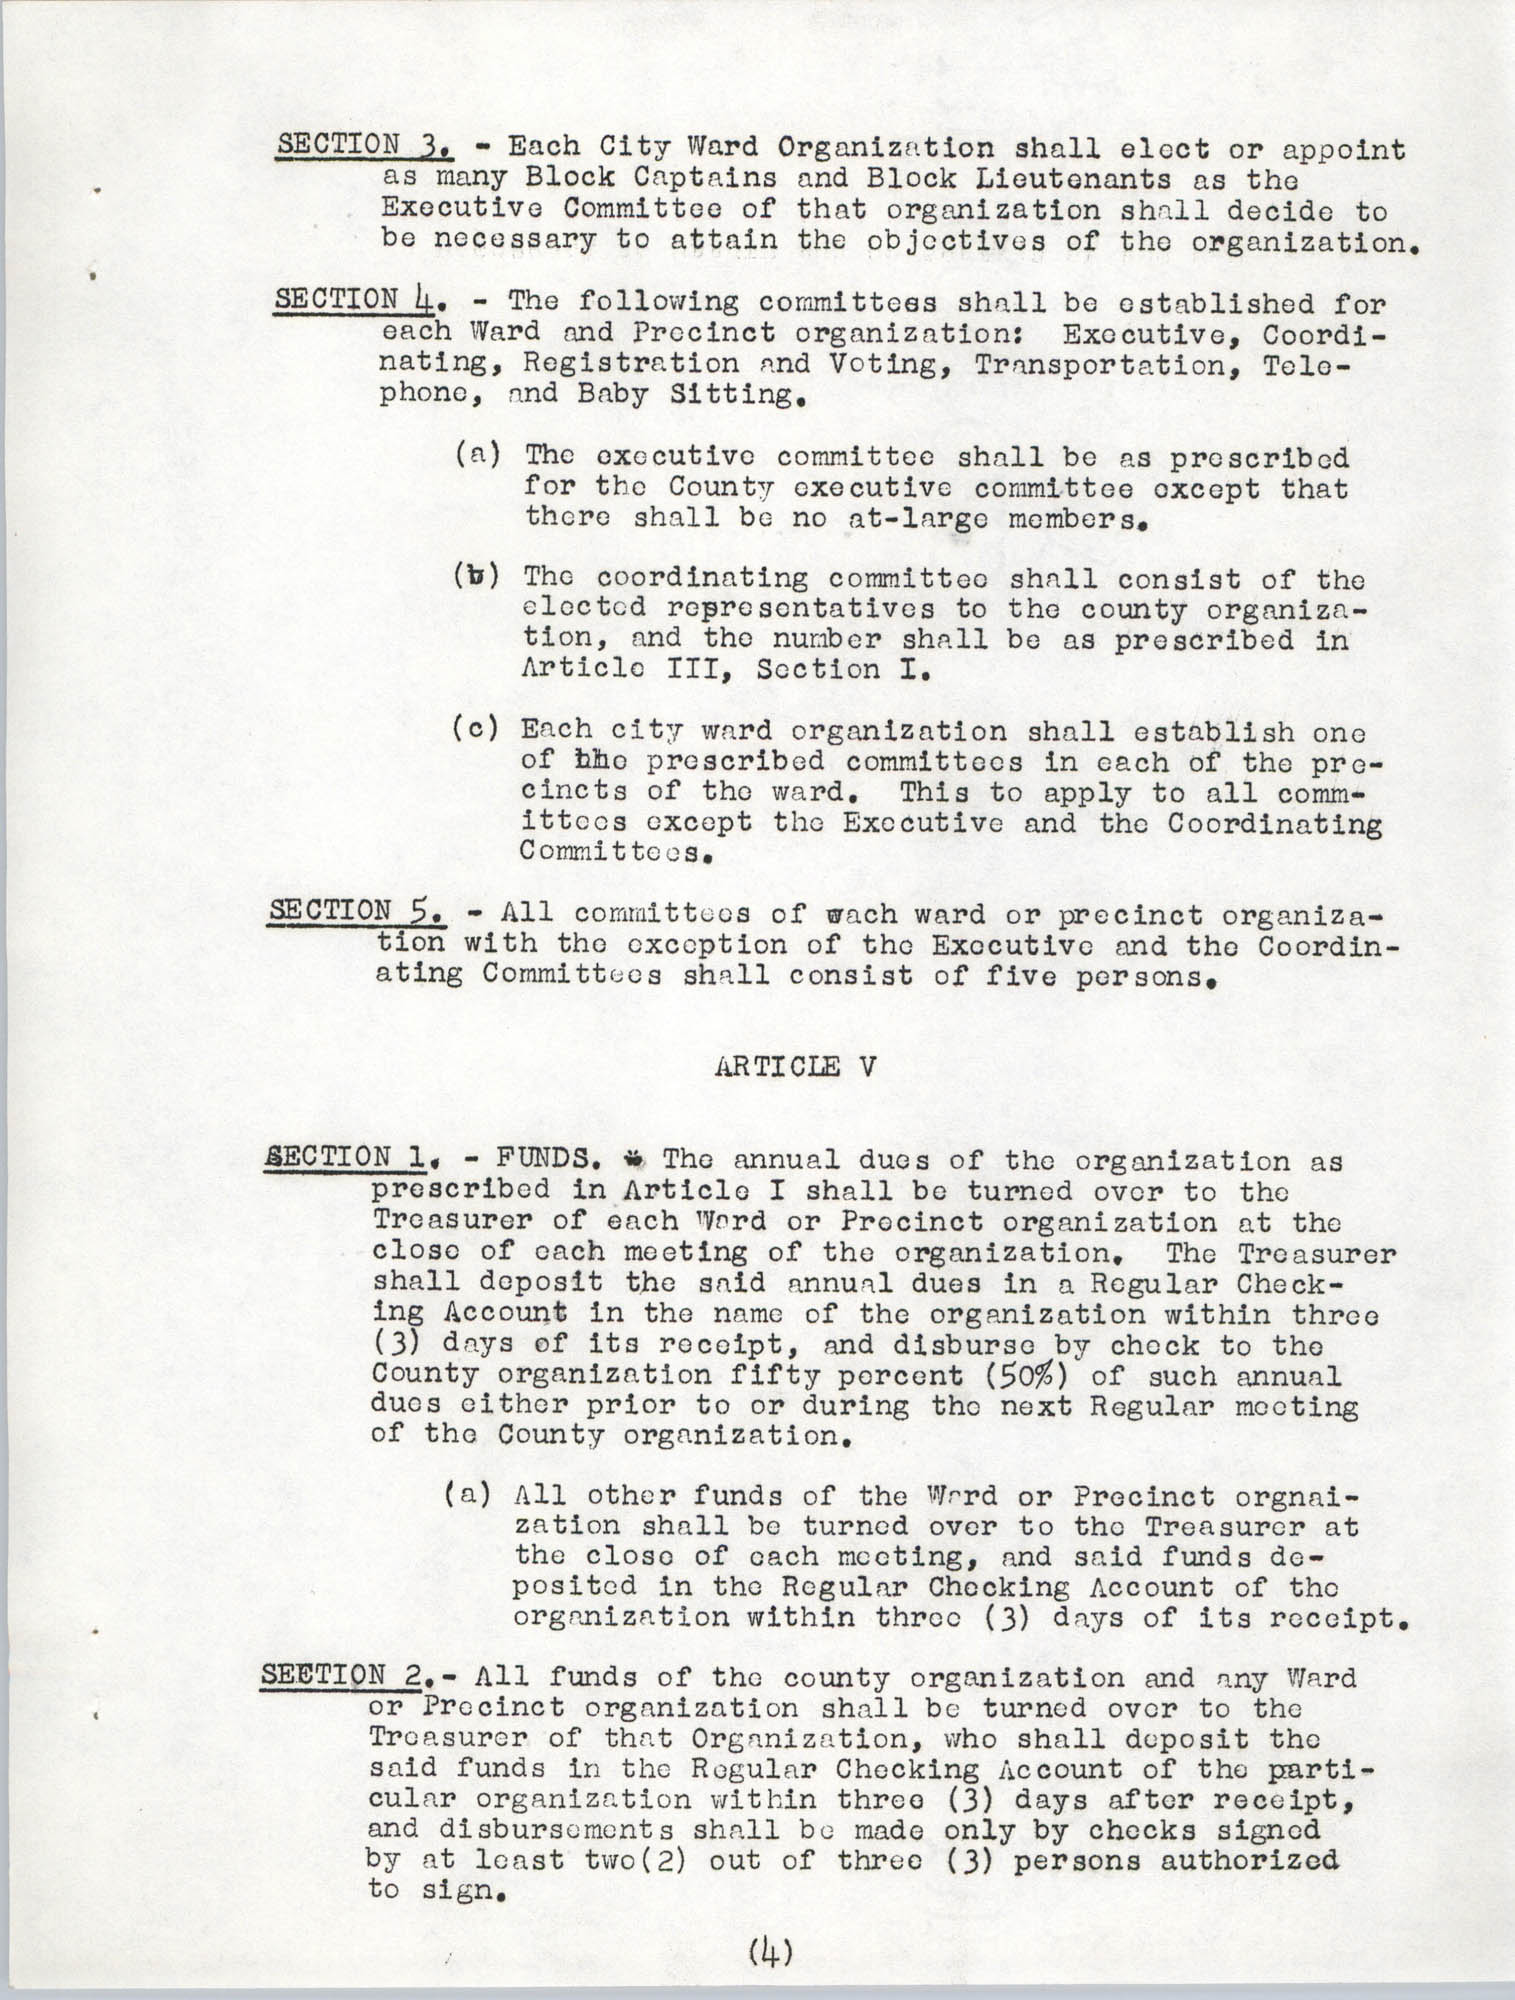 Constitution and By-Laws, Page 4